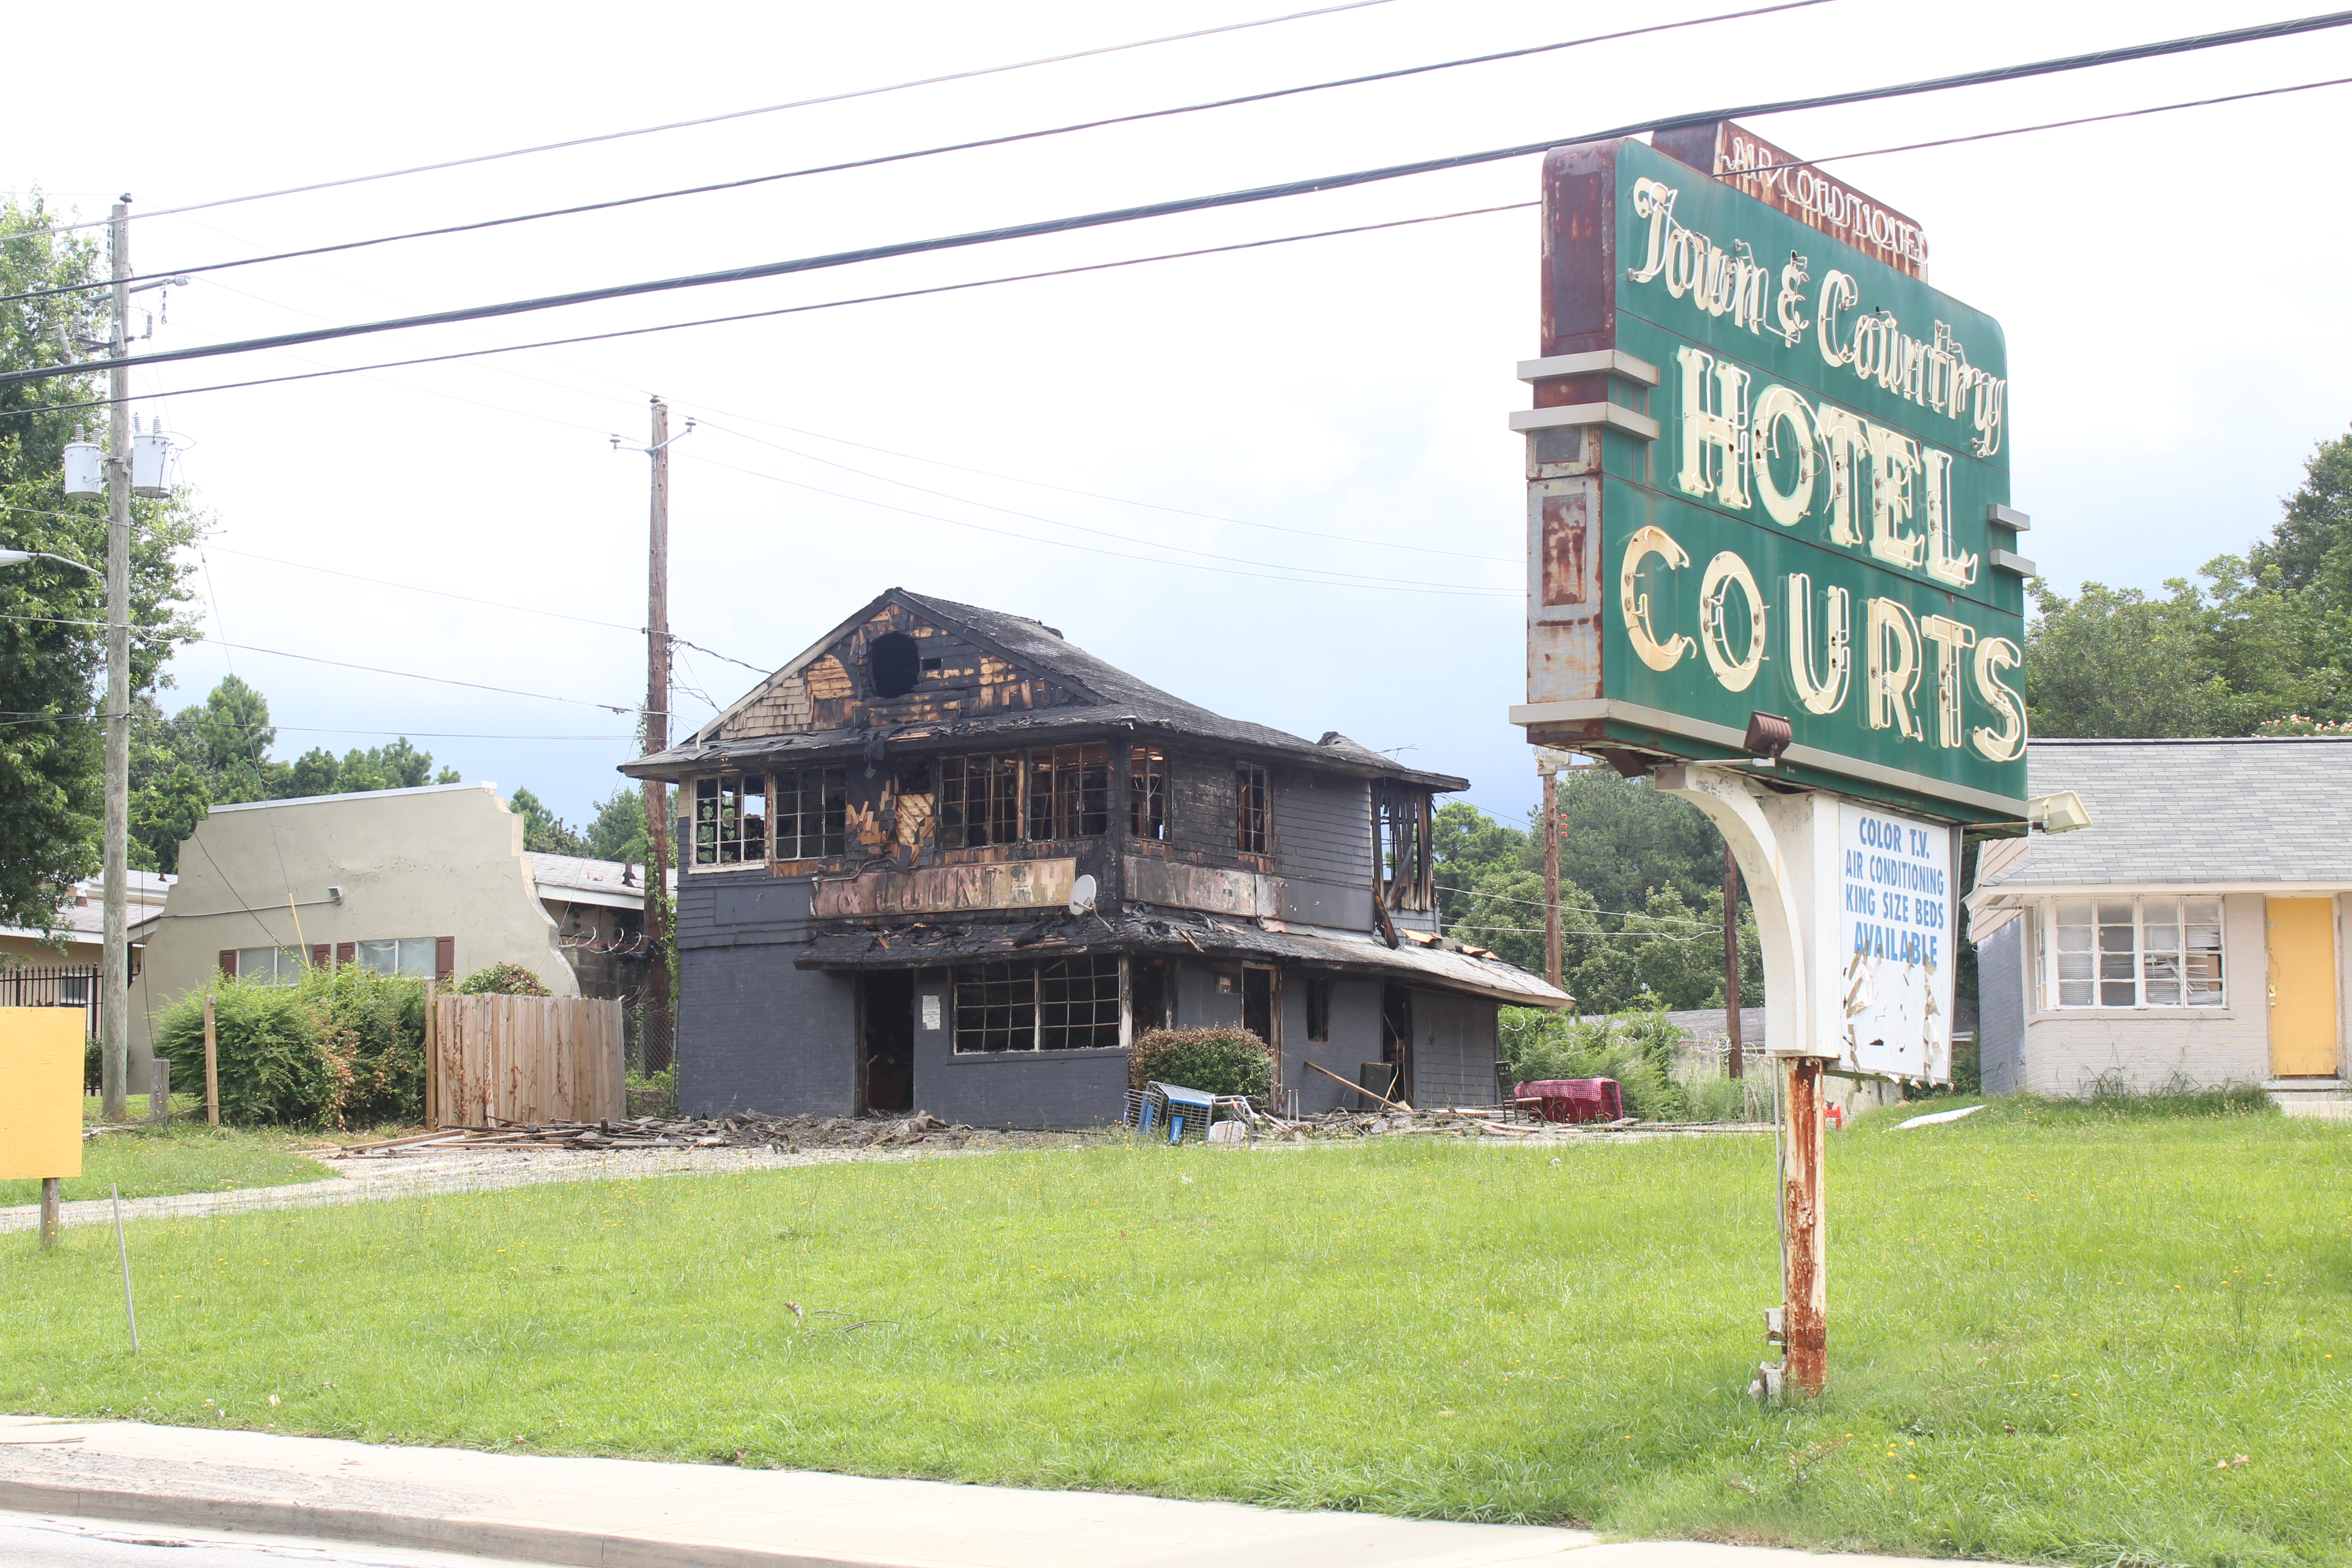 Five miles south of downtown in Perkerson Park, the Town and Country Hotel Courts is a former haven for squatters. Four buildings on the 2.3-acre property are all uninhabitable.